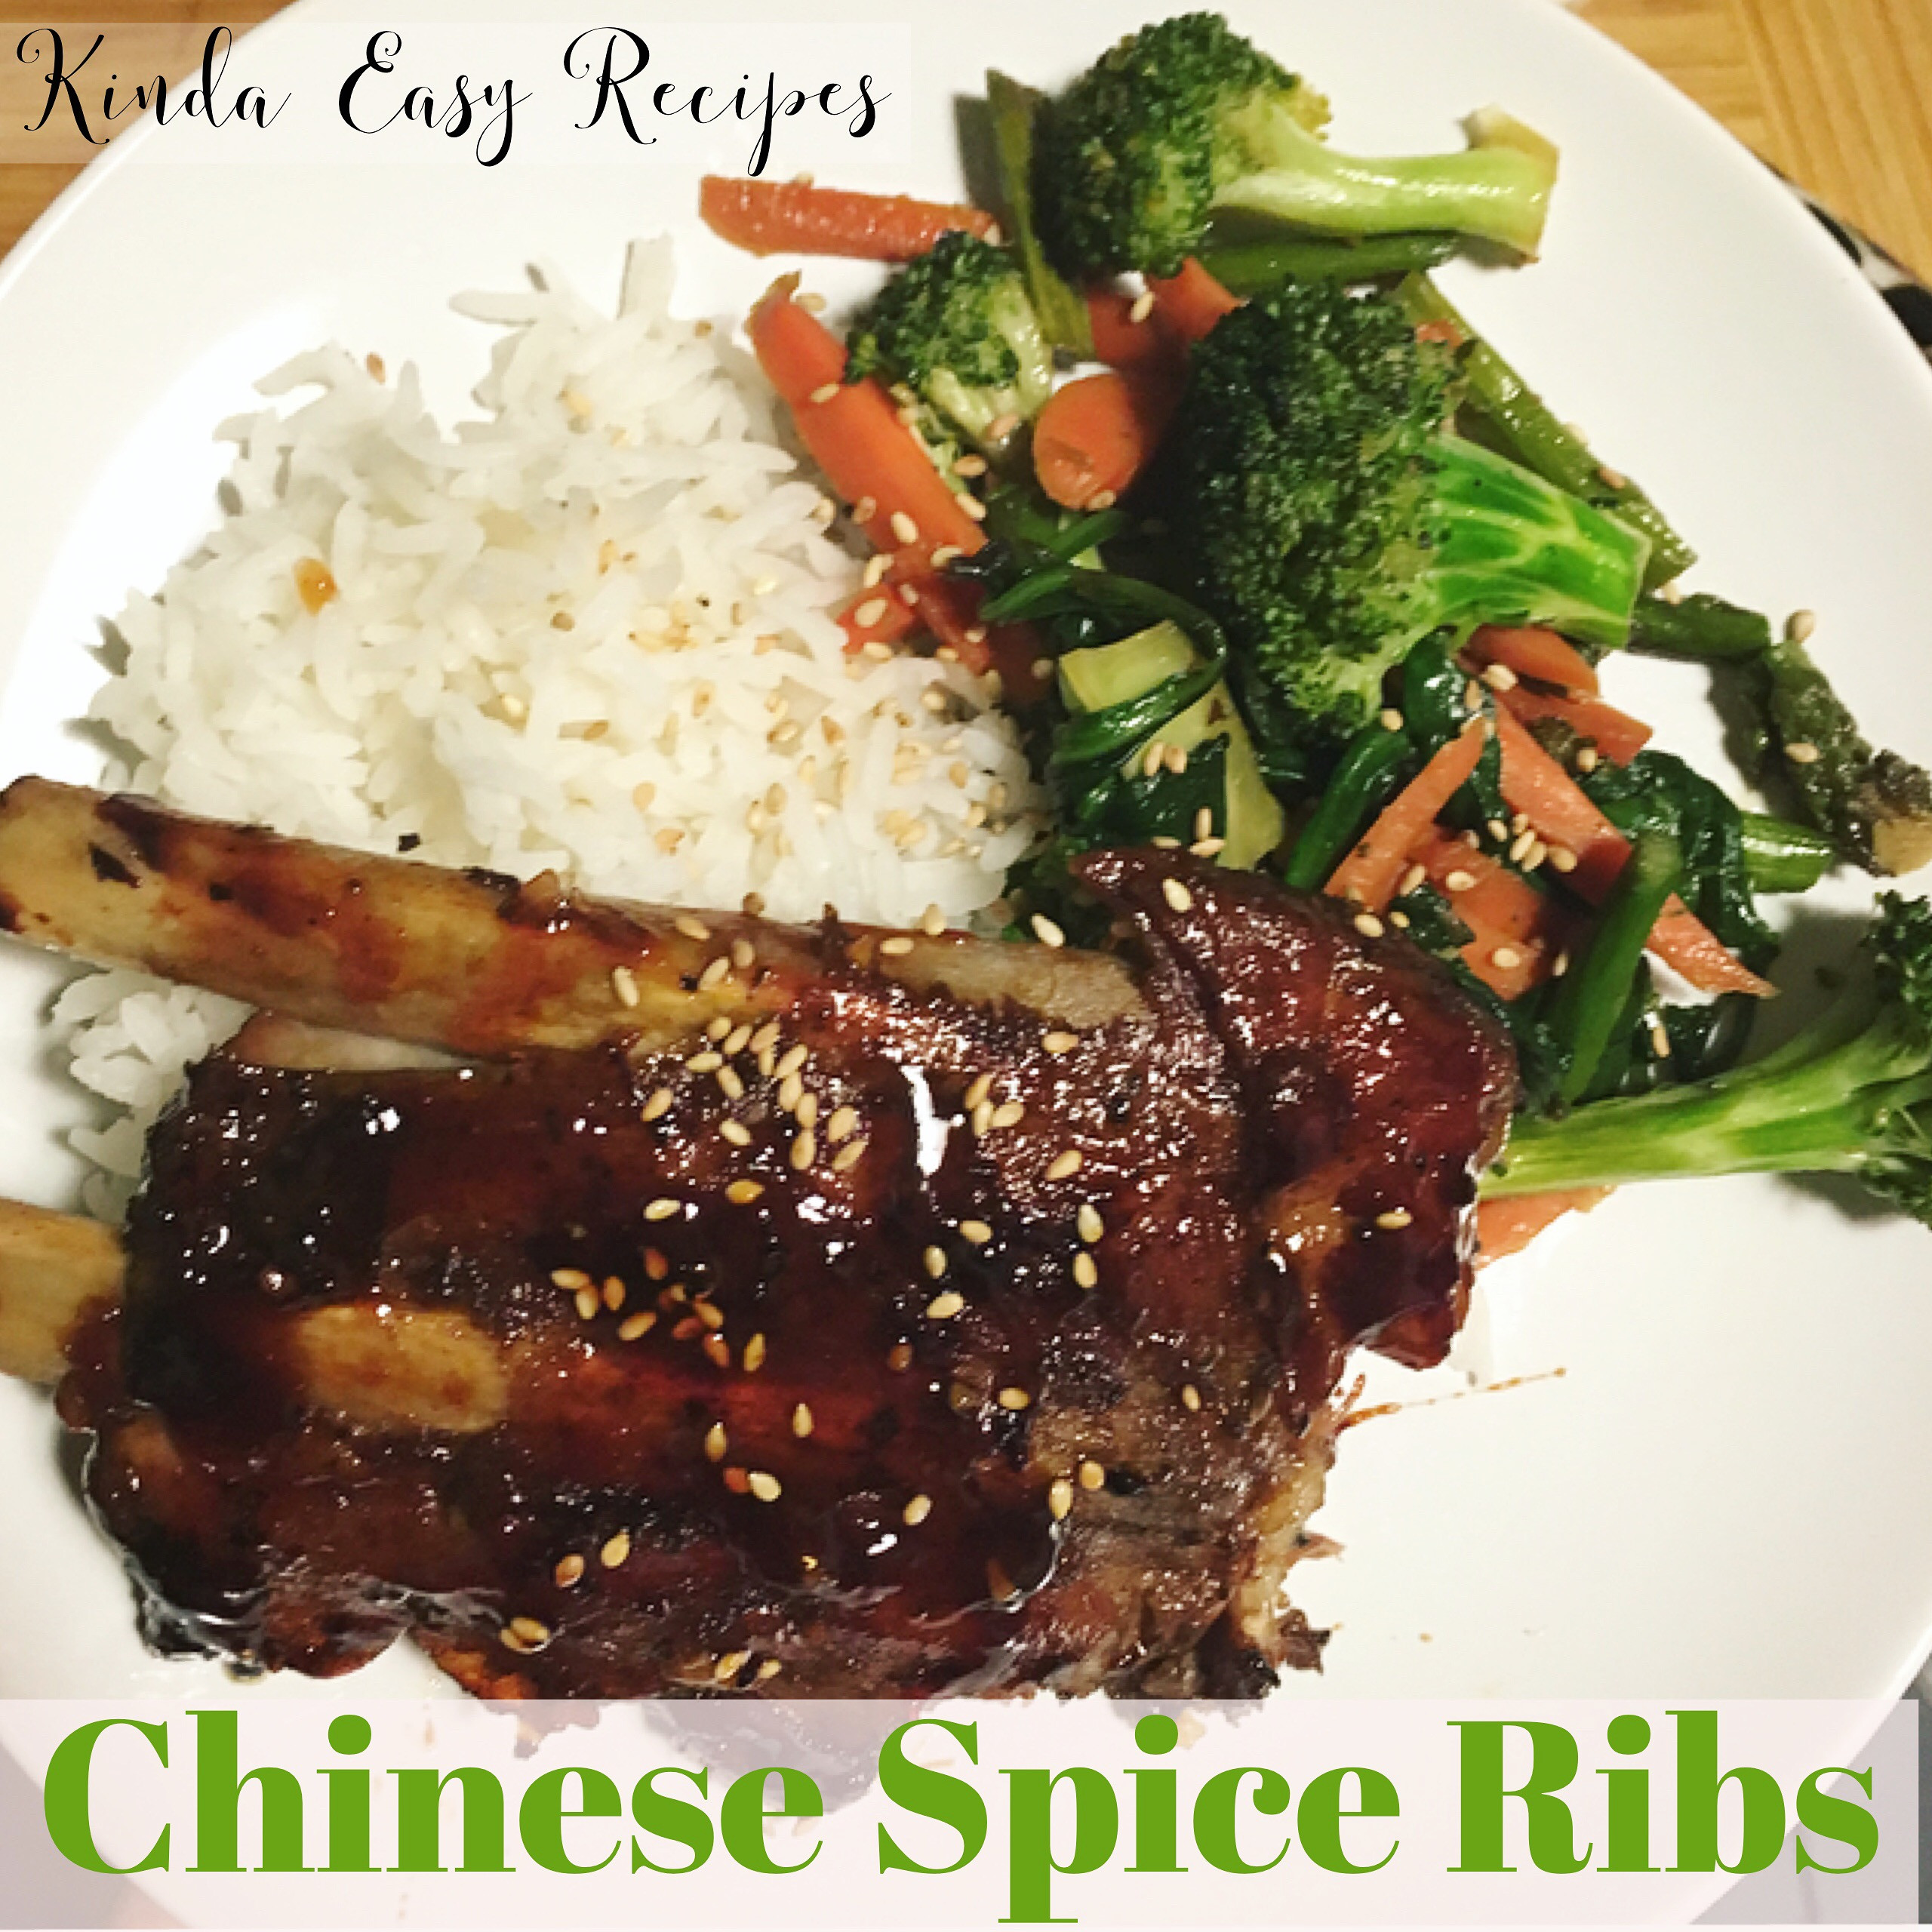 Chinese Instant Pot Recipes  Chinese 5 Spice Ribs